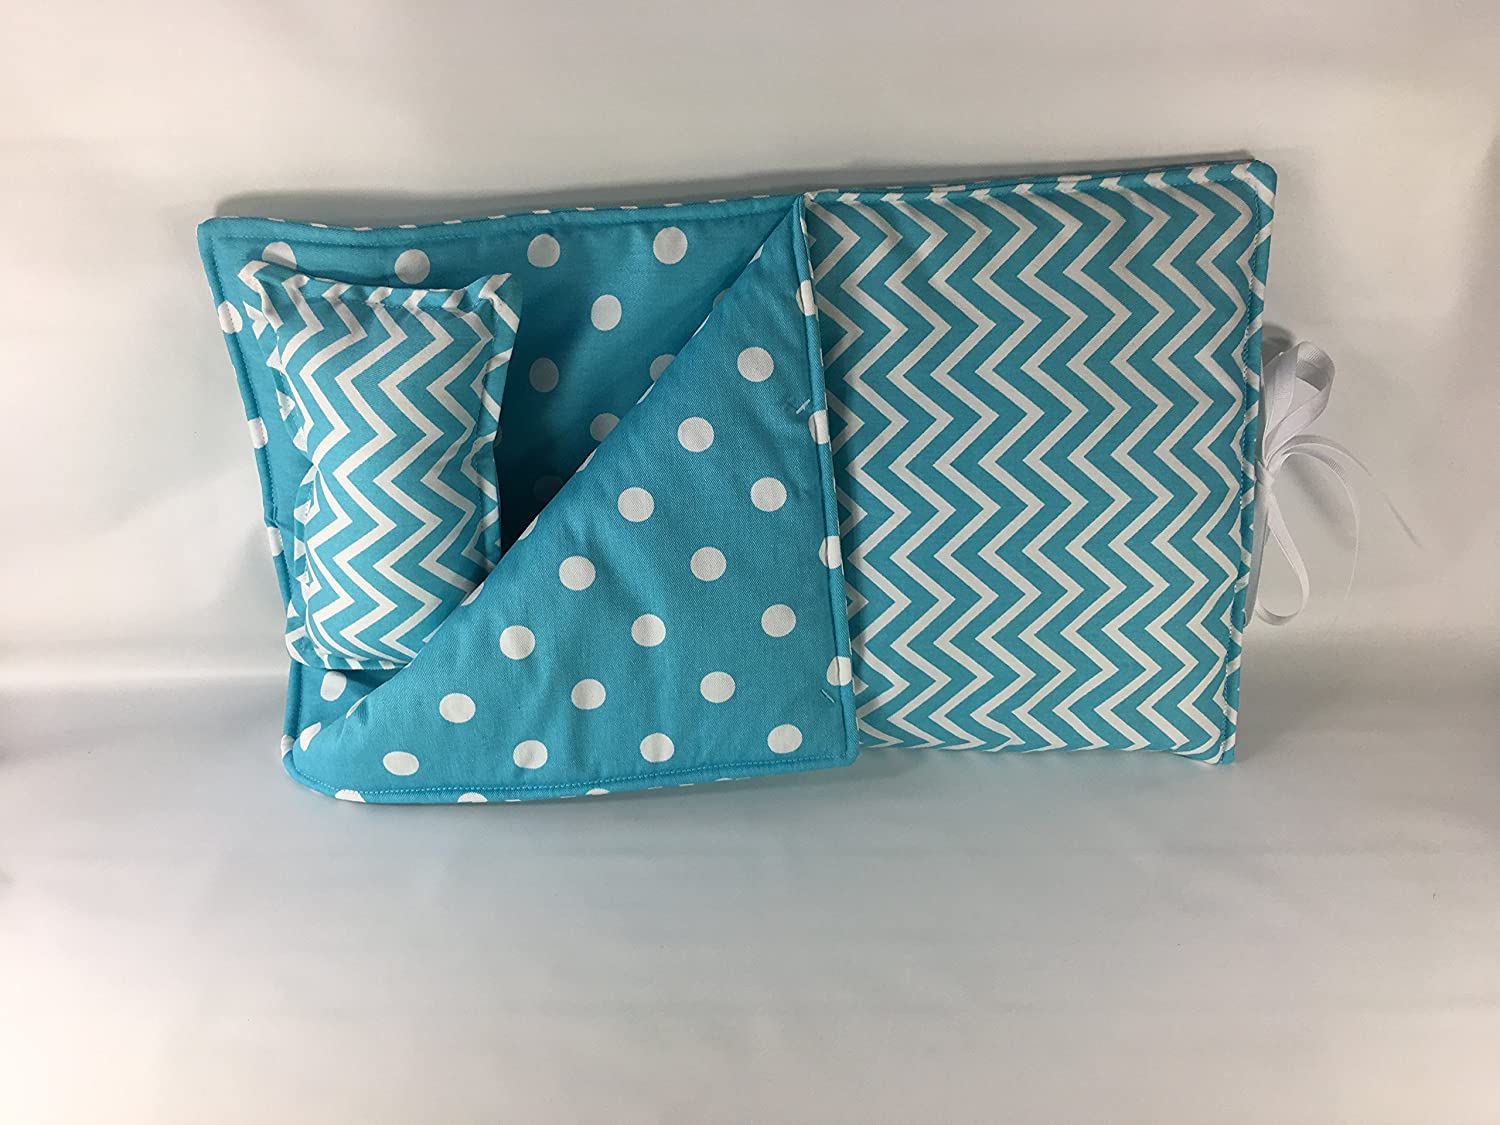 18 Doll Sleeping Bag Girly Blue and White Chevron Print